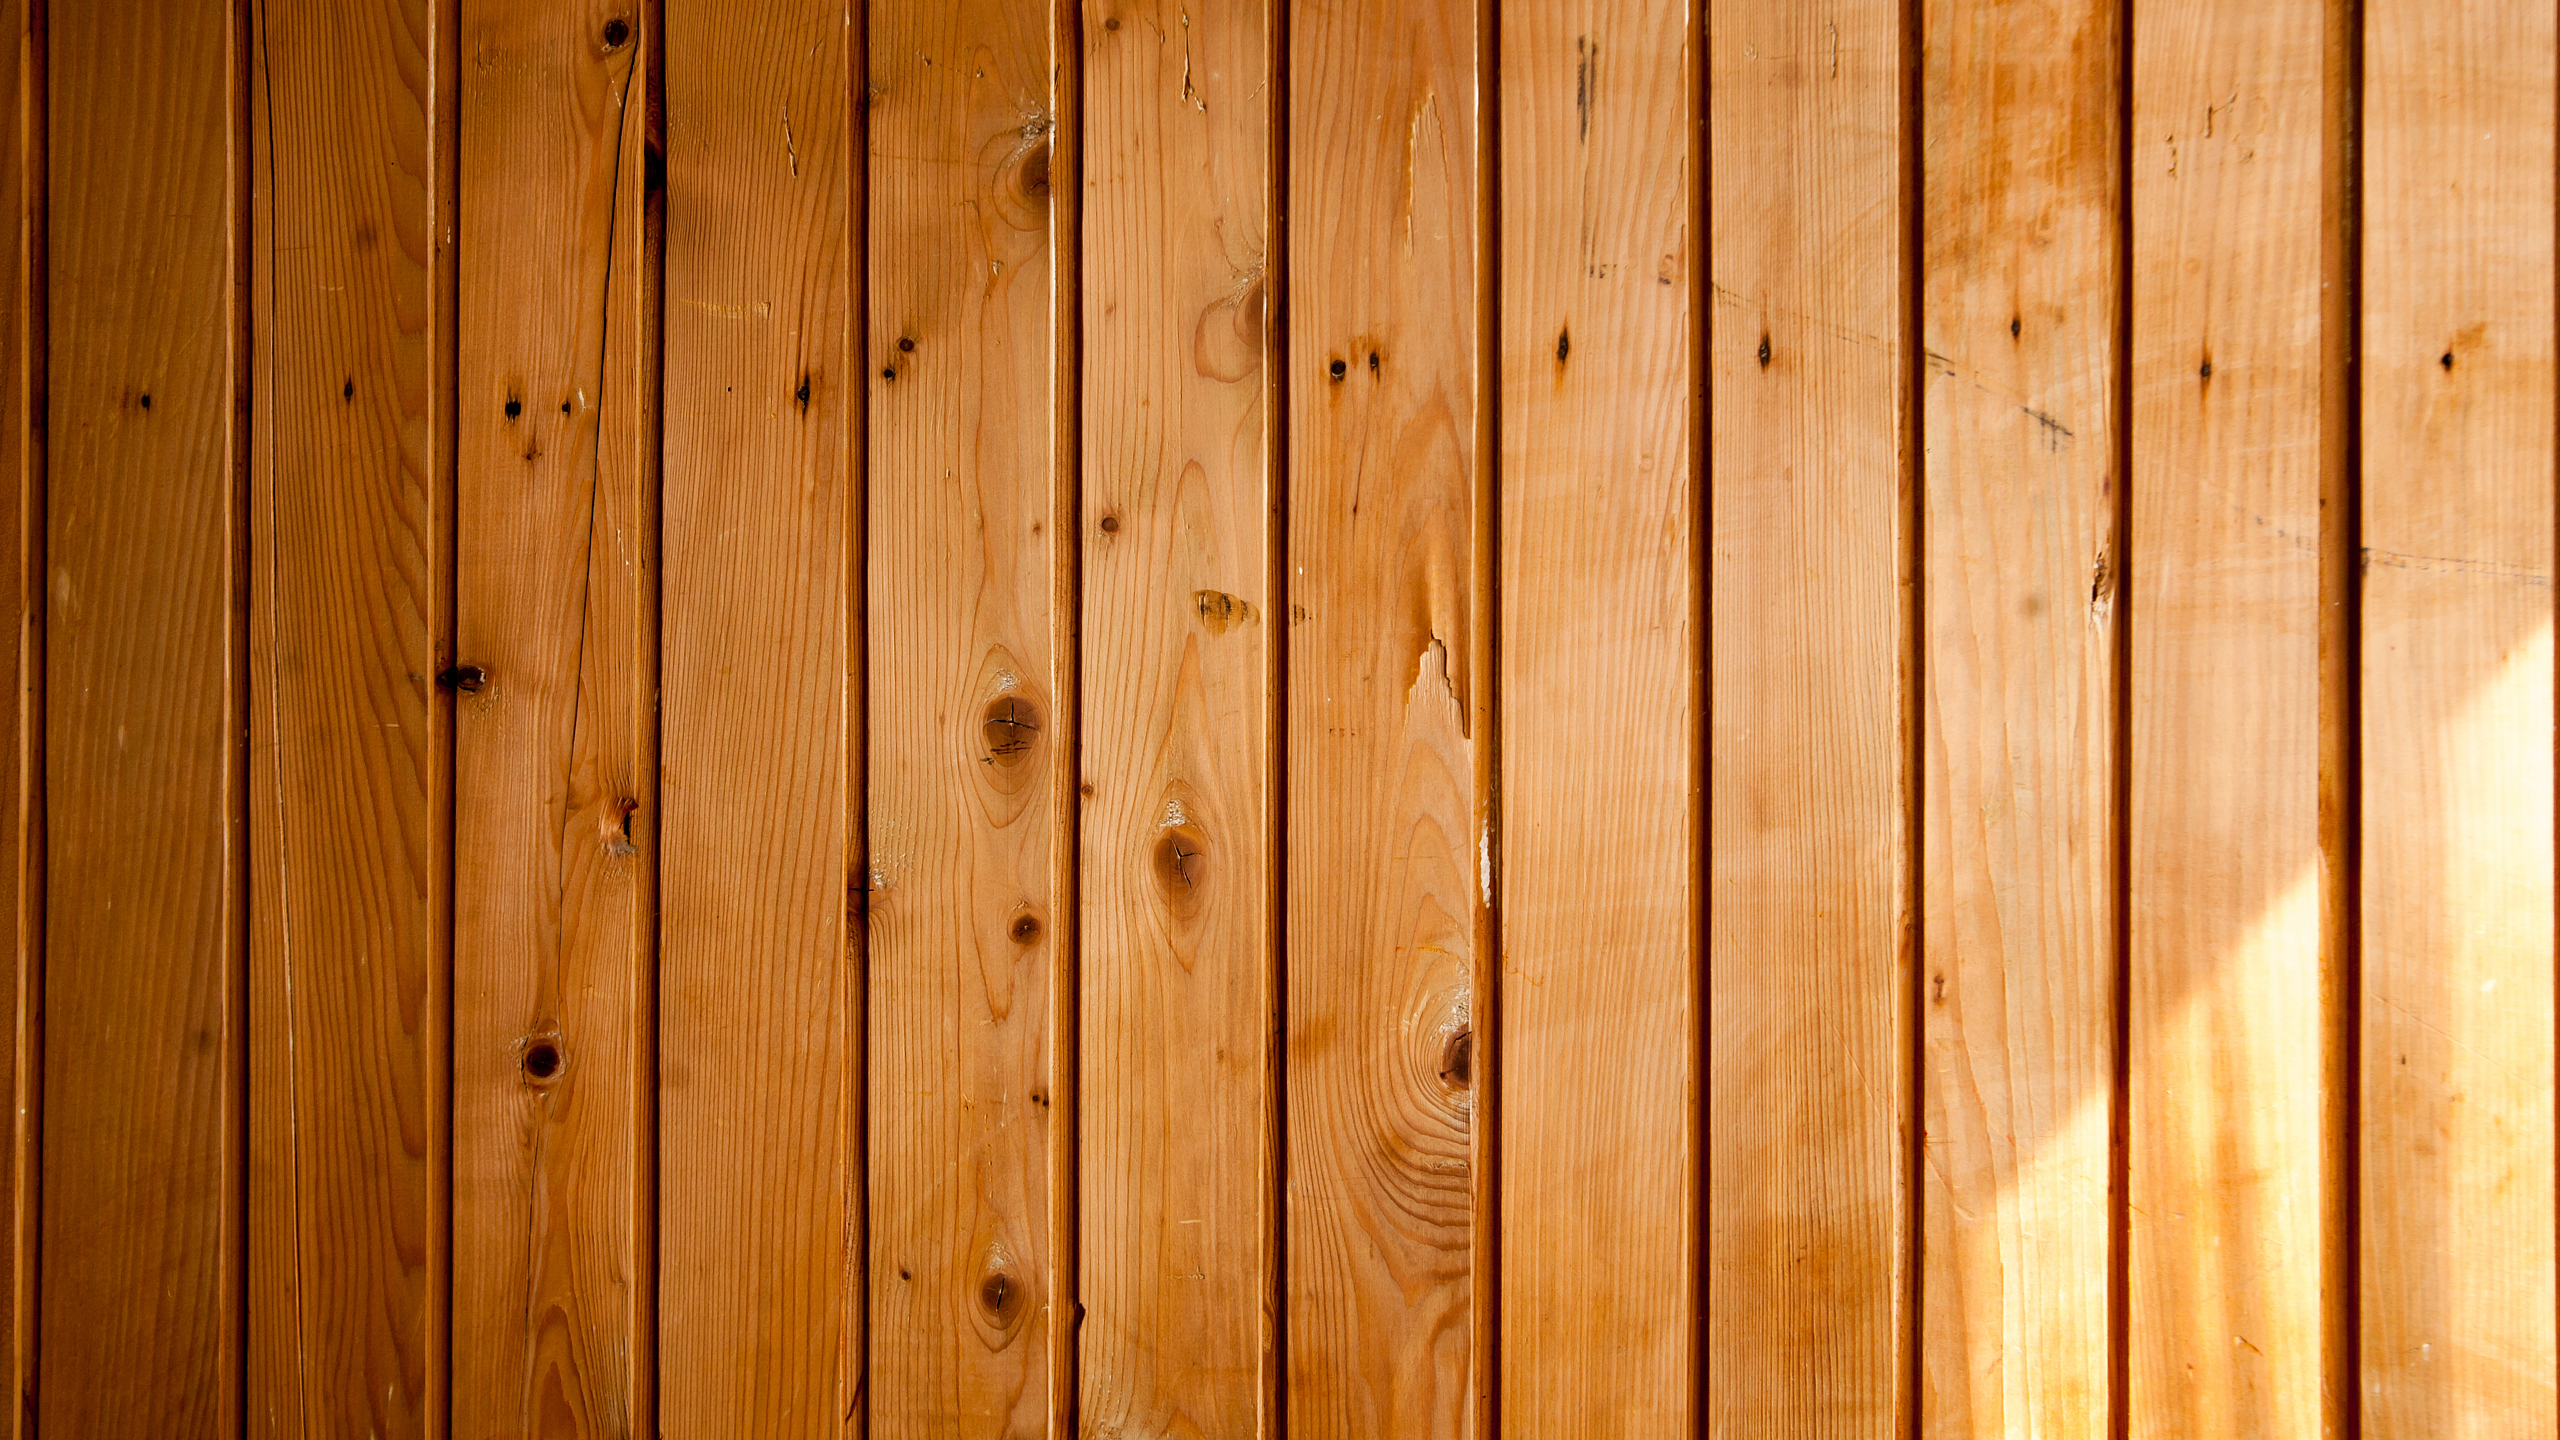 Wood HD Wallpaper Background Image 2560x1440 ID:720115 Wallpaper Abyss